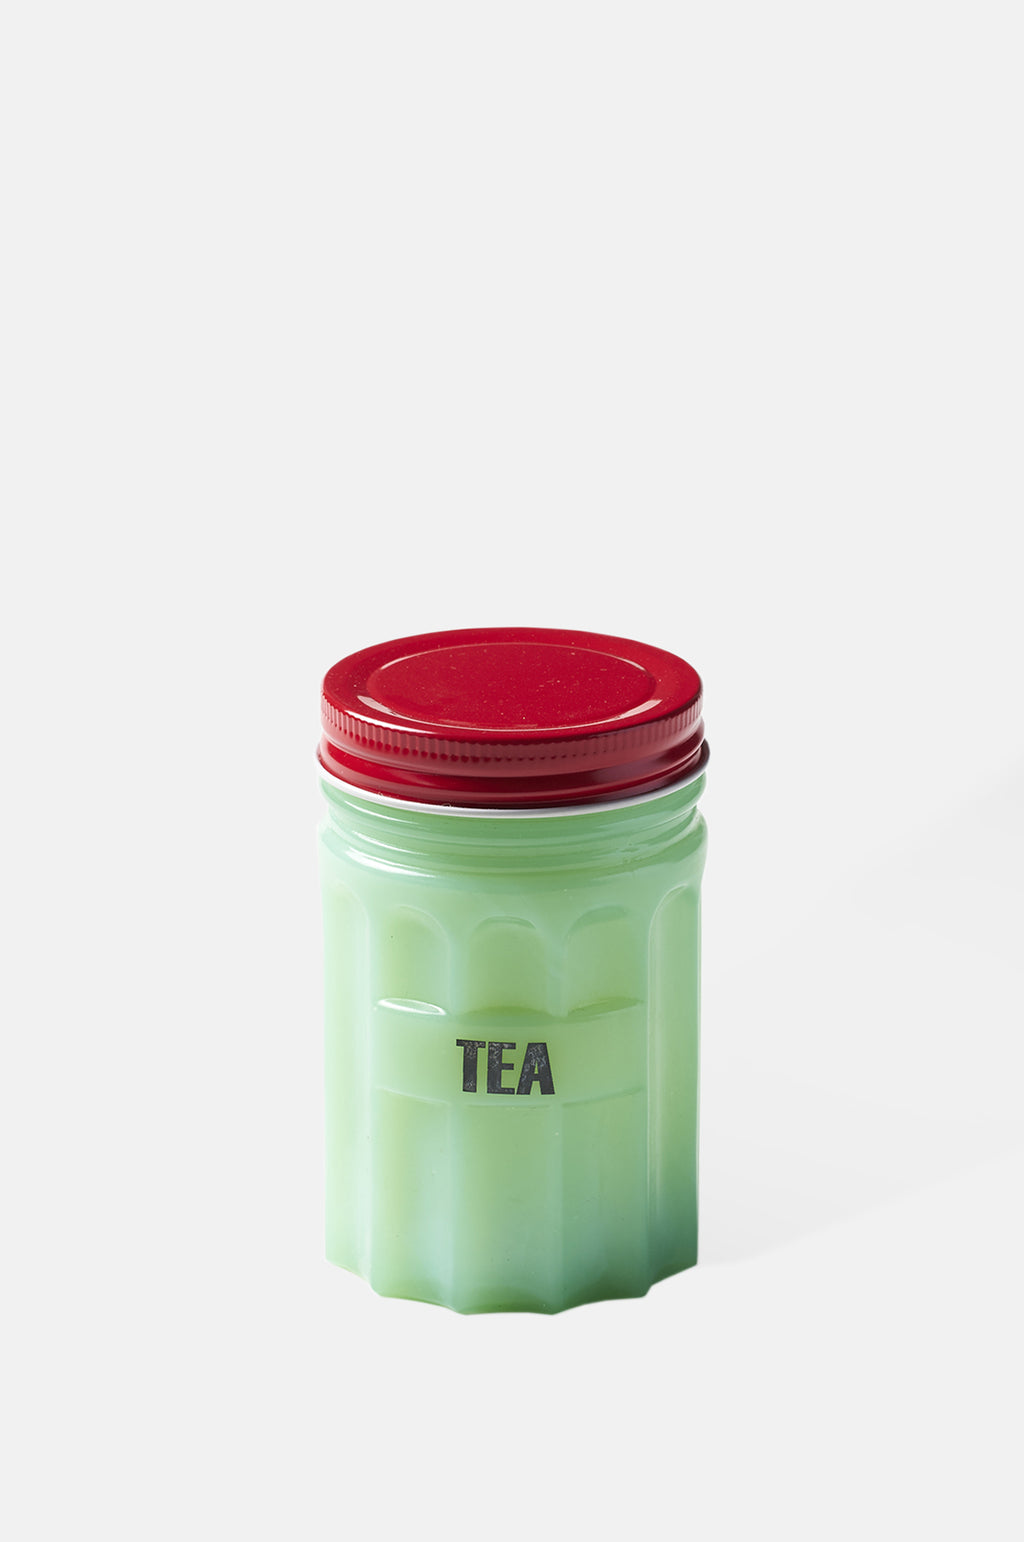 Tea Small Green Jar